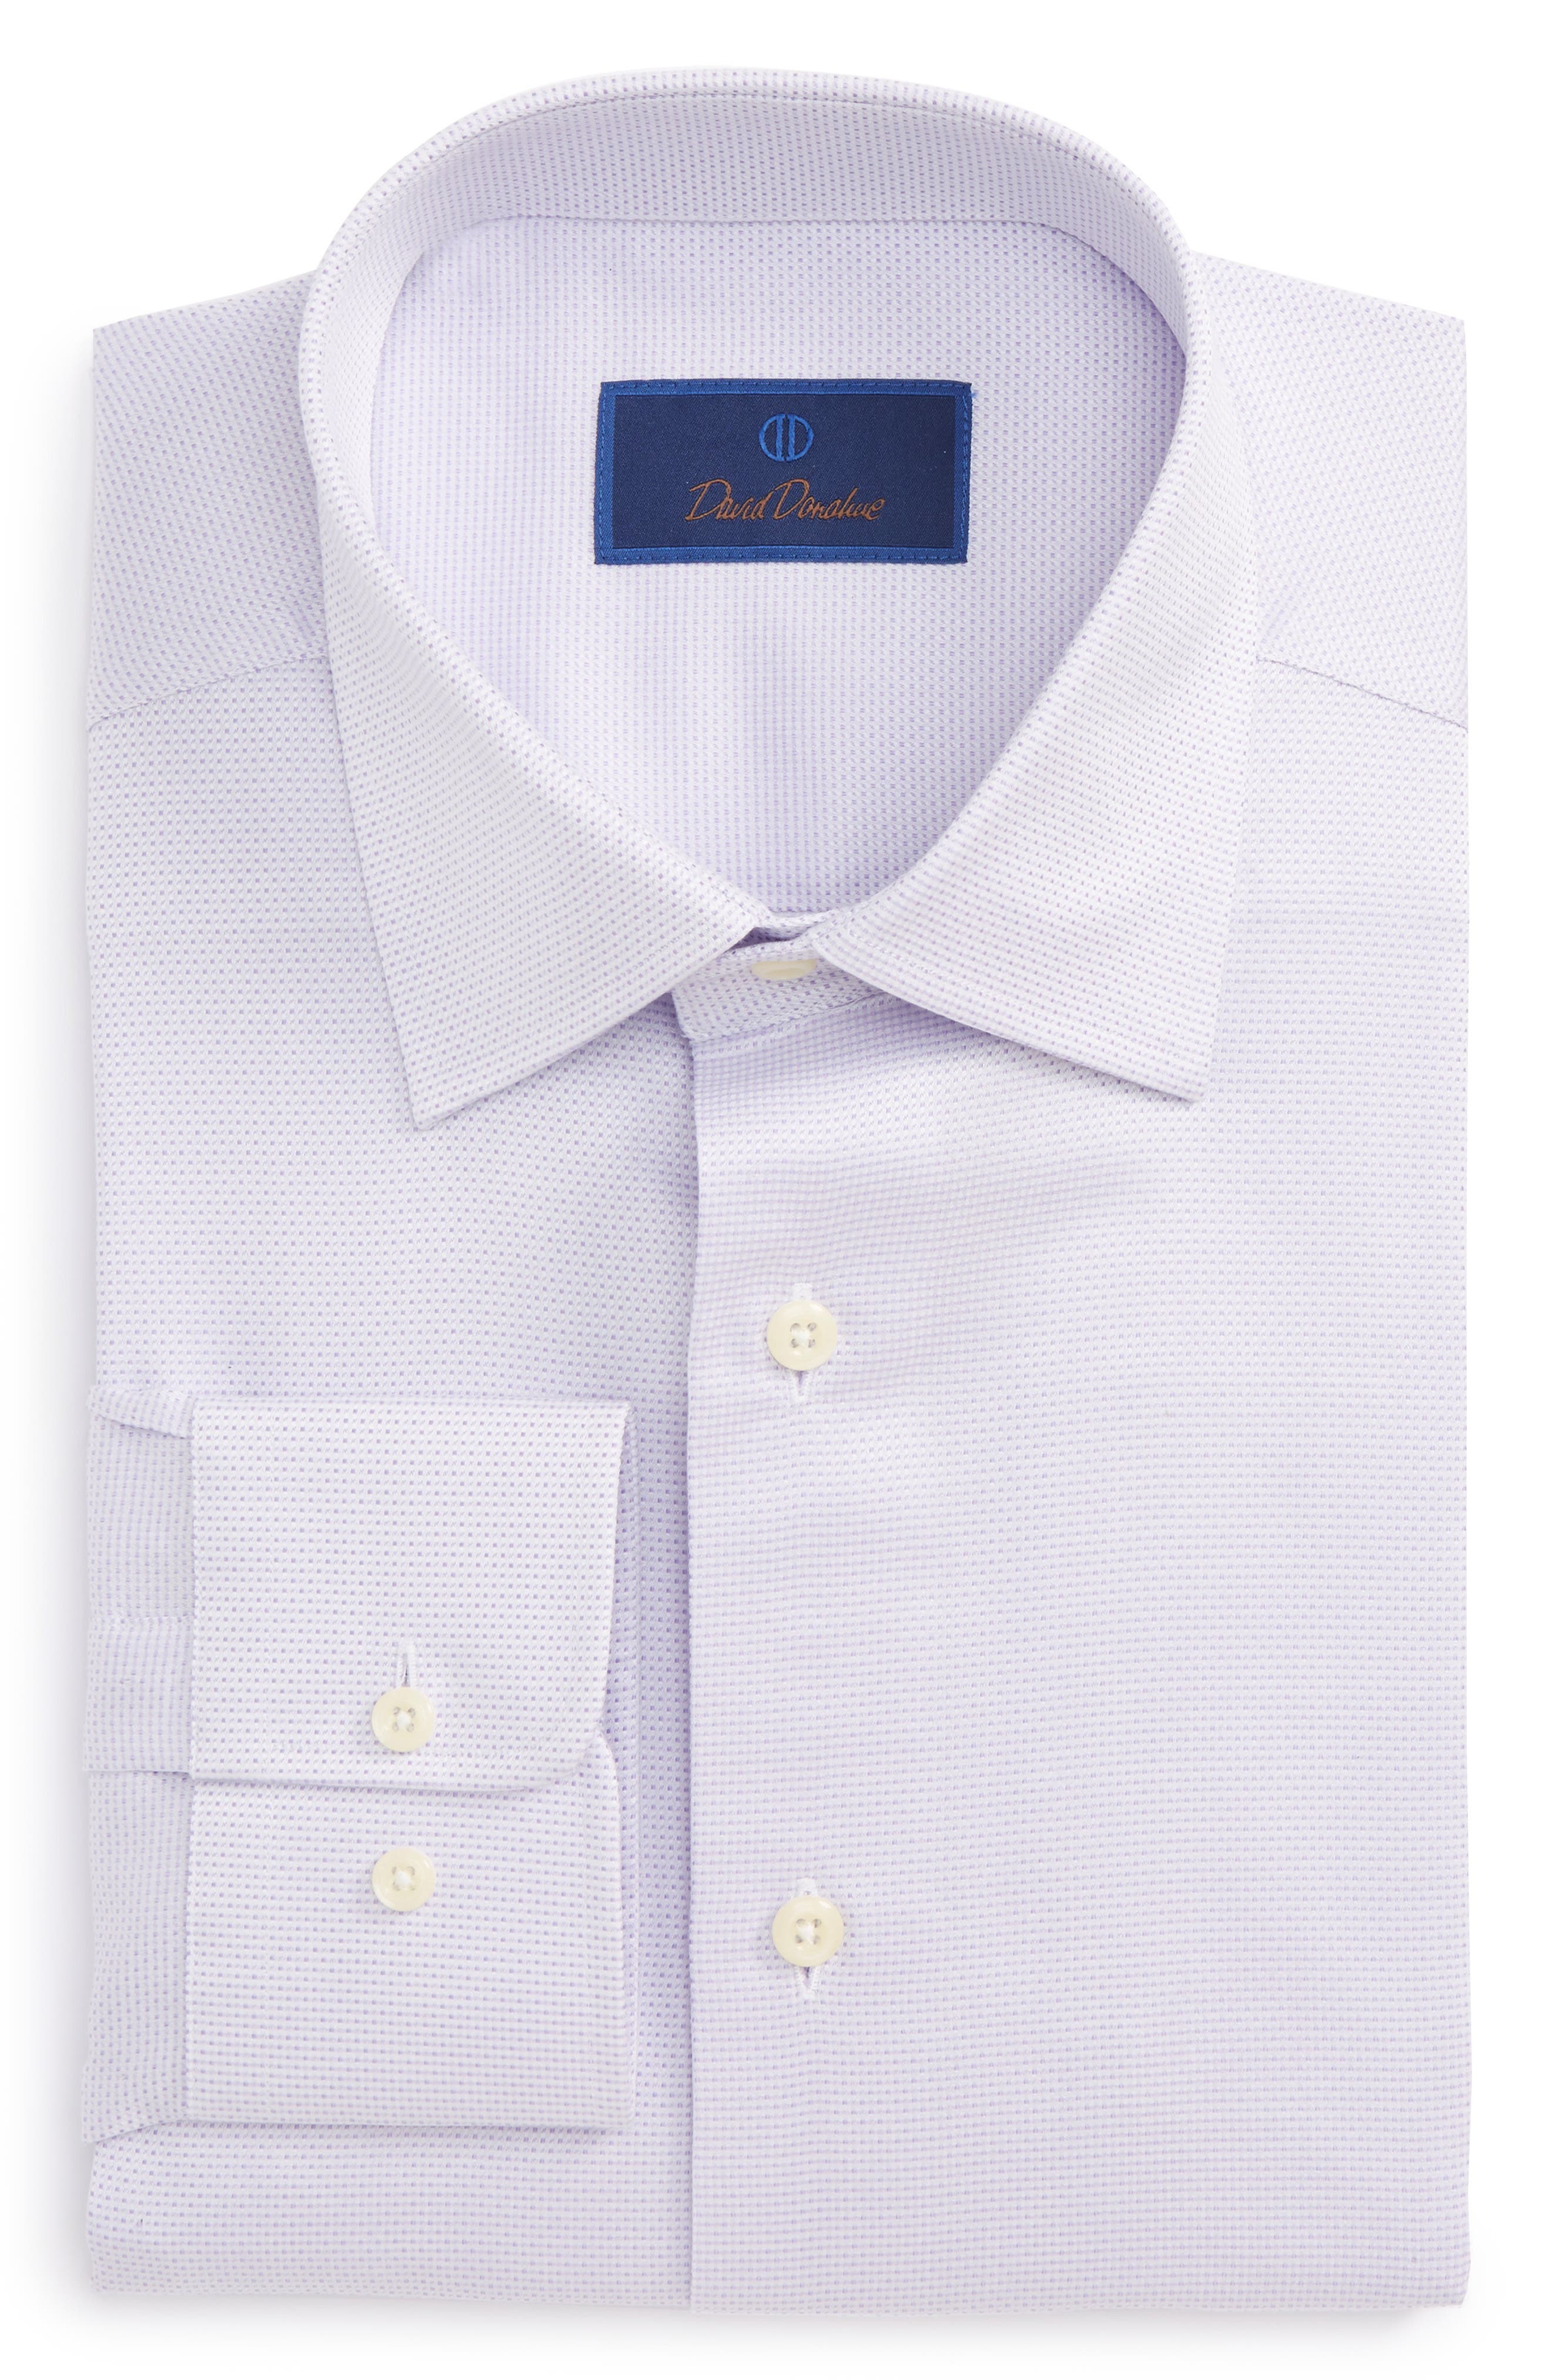 Regular Fit Solid Dress Shirt,                             Main thumbnail 1, color,                             Lilac